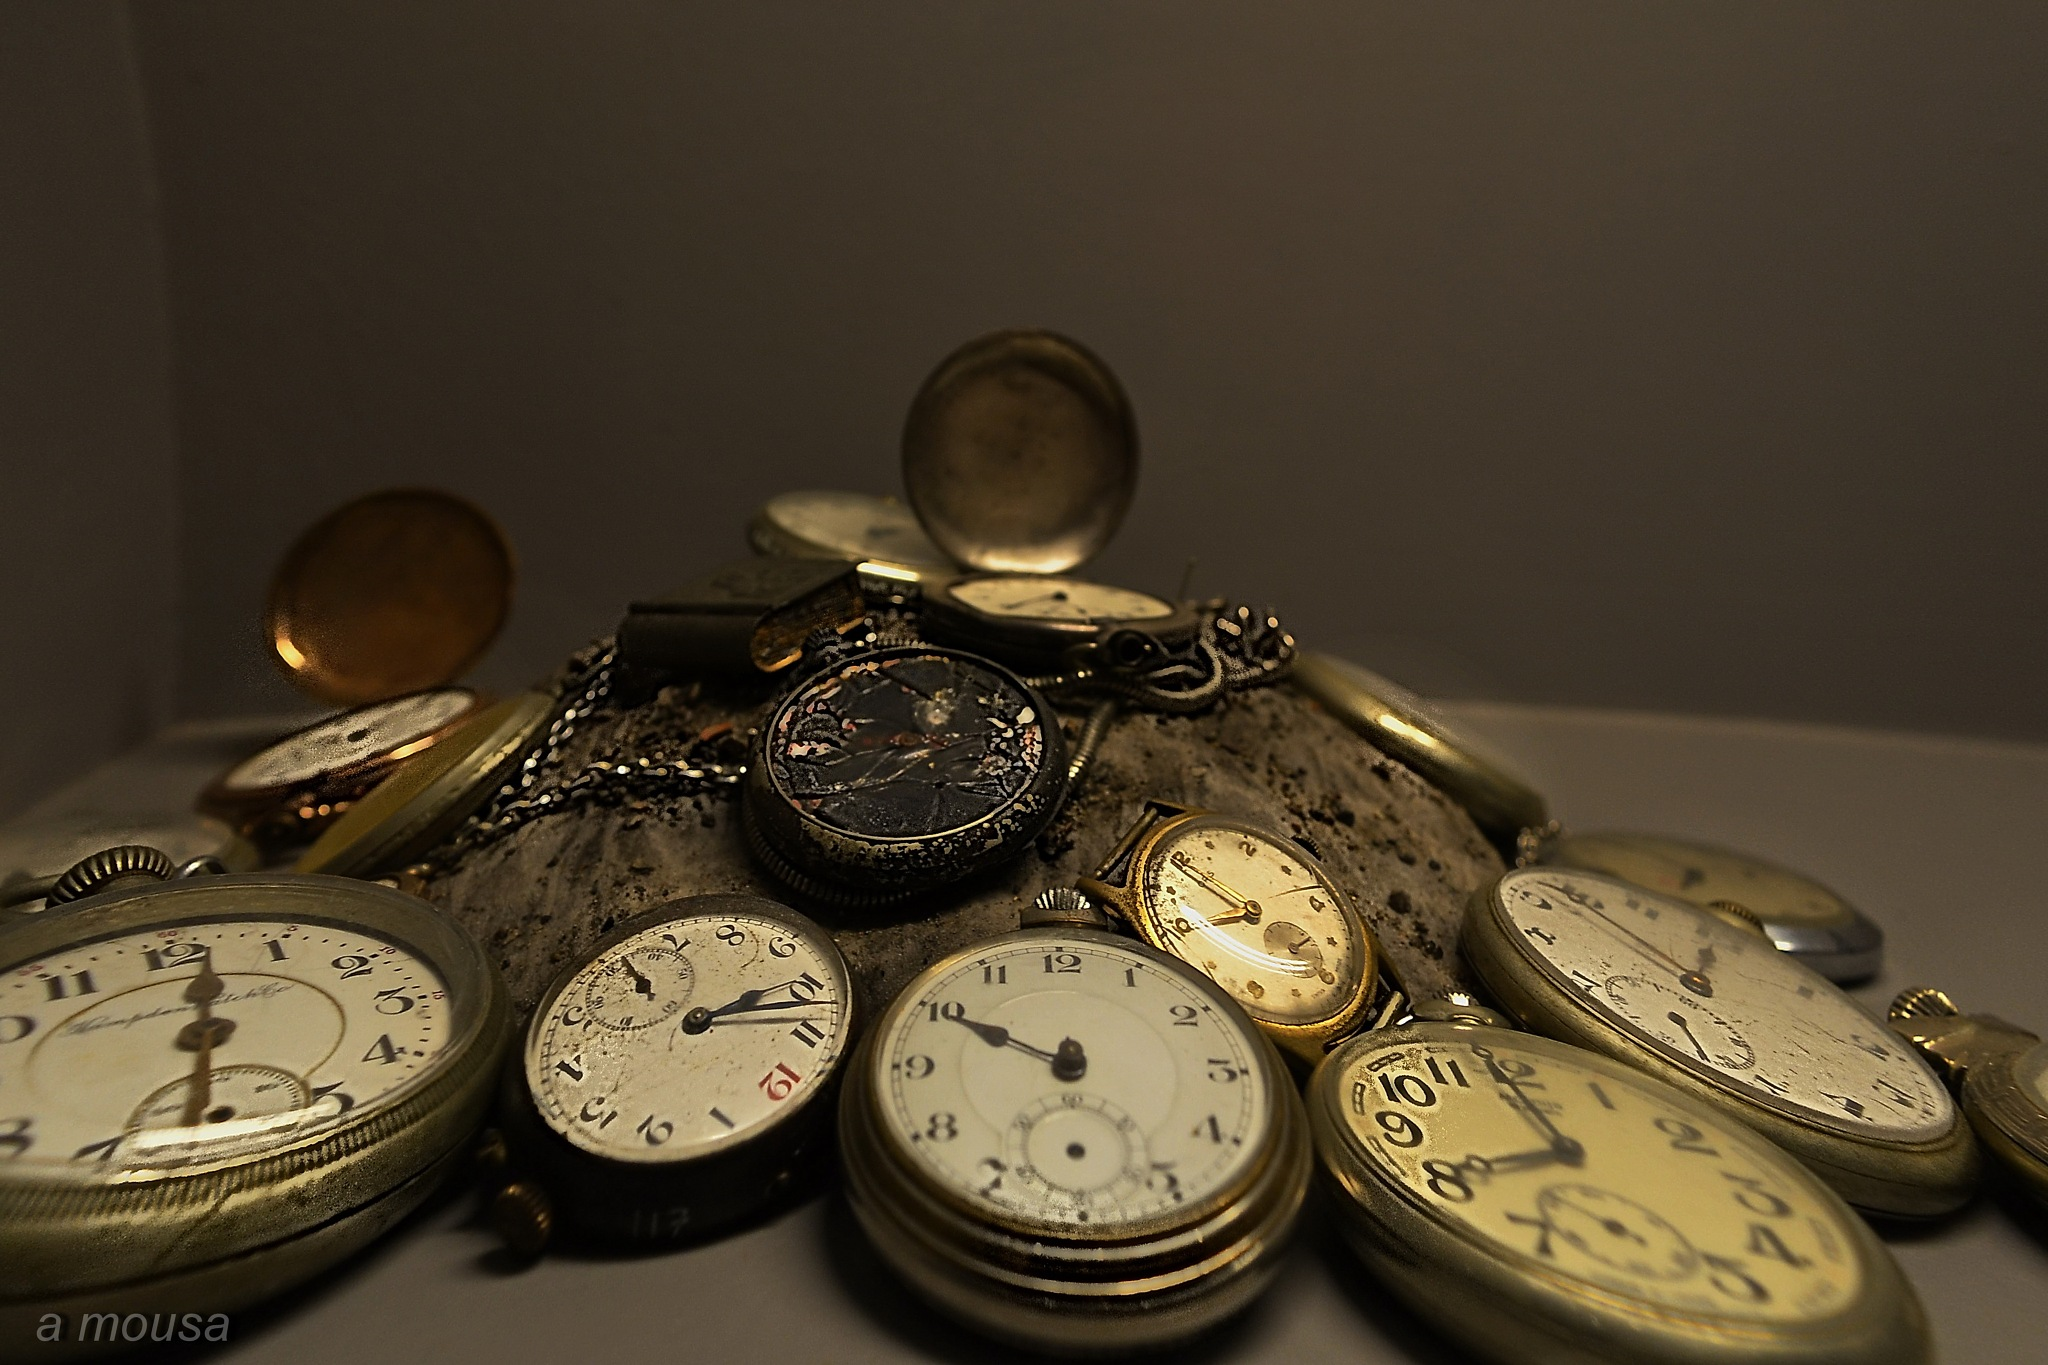 antique watches from the period of 30's-40's by alexandra.tsamimousa